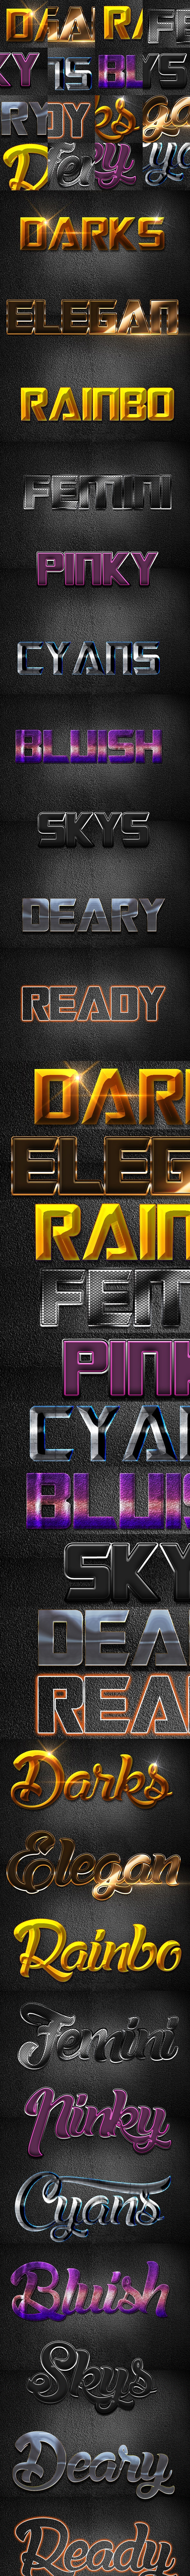 3D Text Effect B160930 - Text Effects Actions